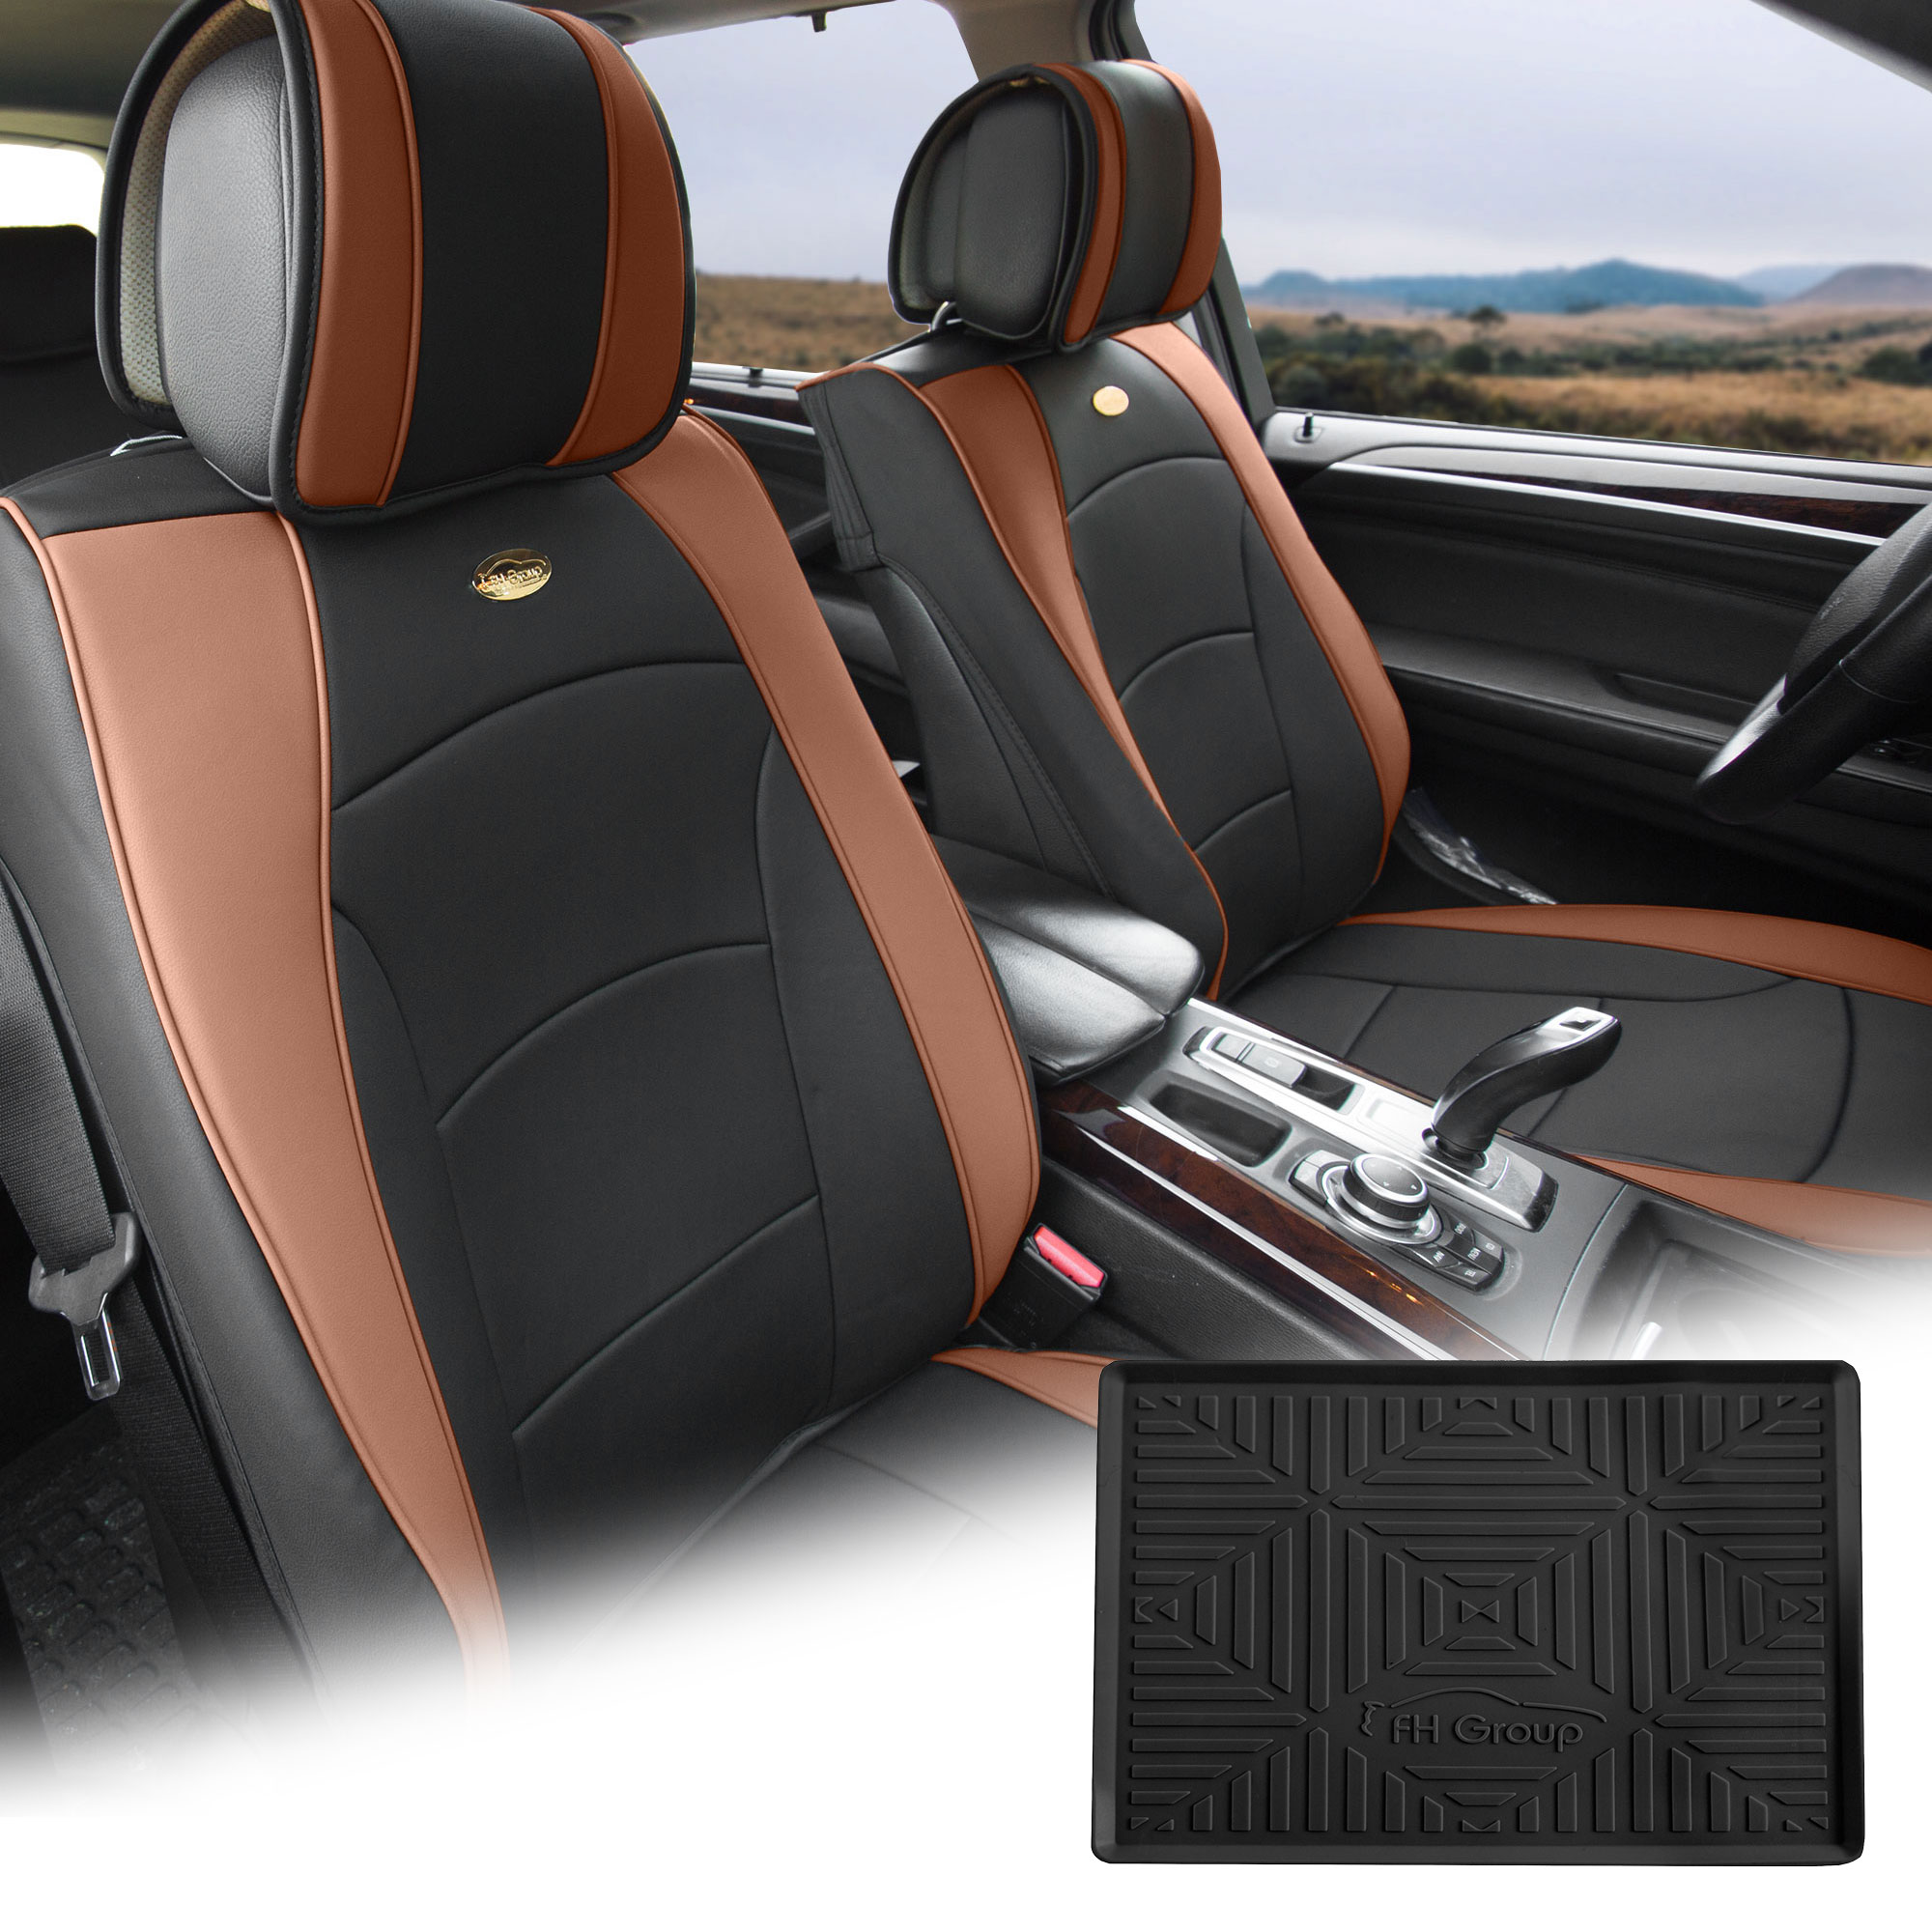 FH Group Brown Black PU Leather Front Bucket Seat Cushion Covers for Auto Car SUV Truck Van with Black Dash Mat Combo